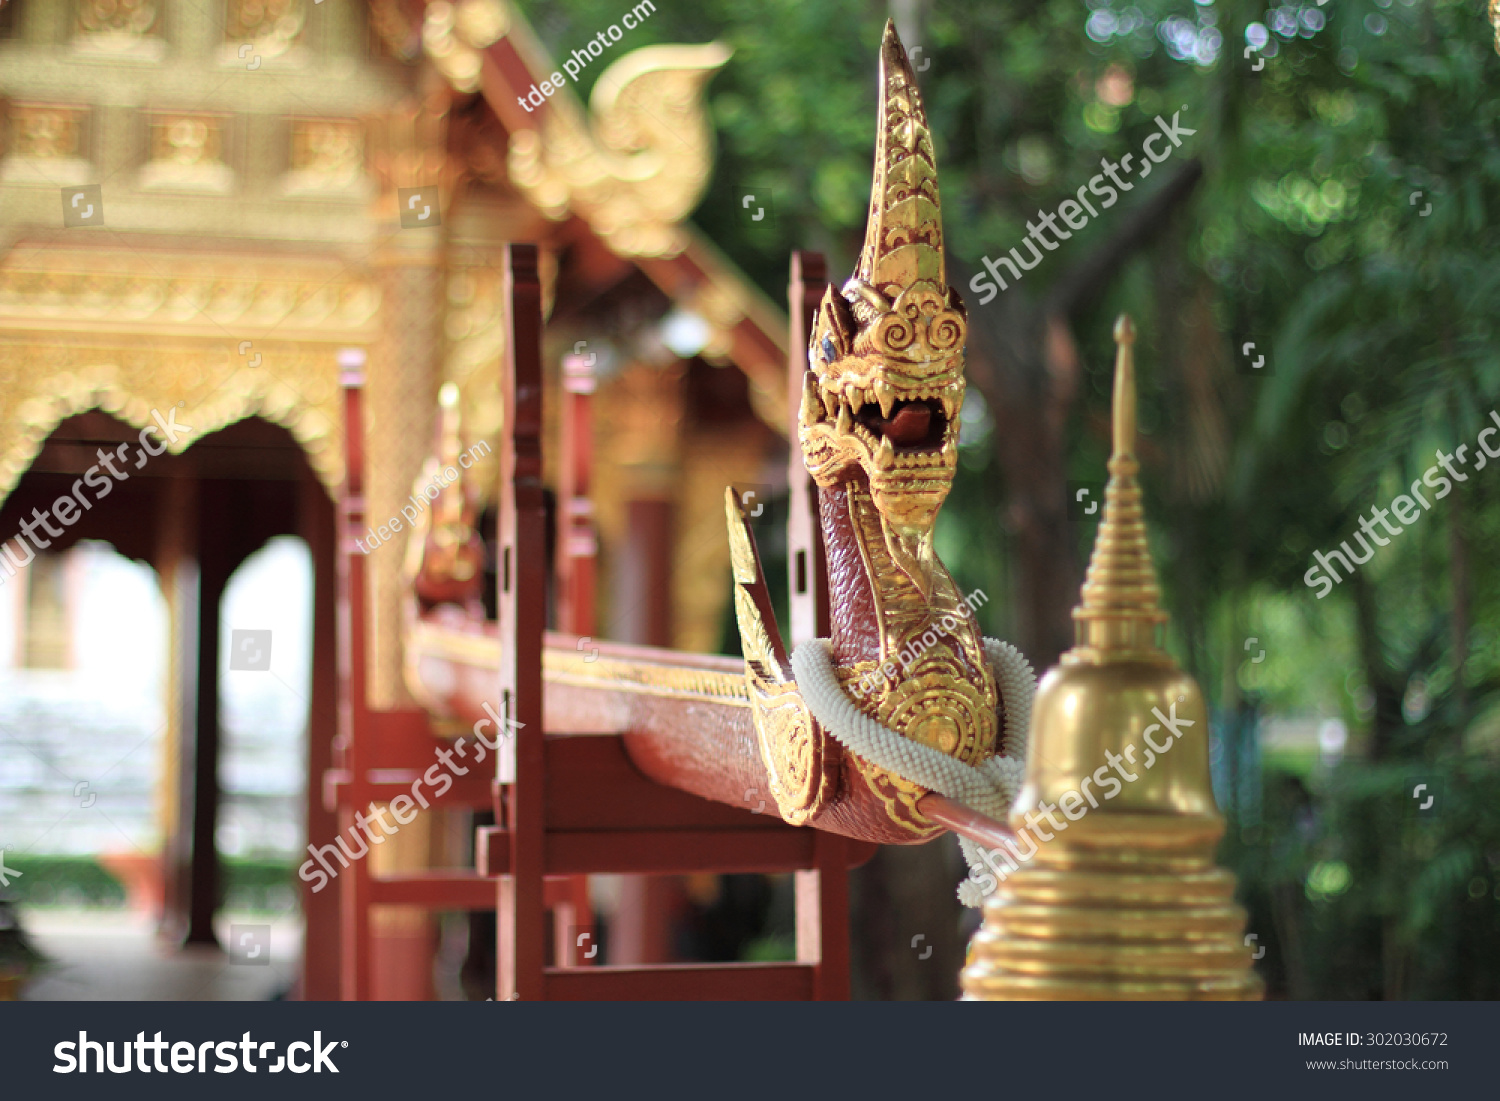 Naga made of wood carving Ancient Thai style art